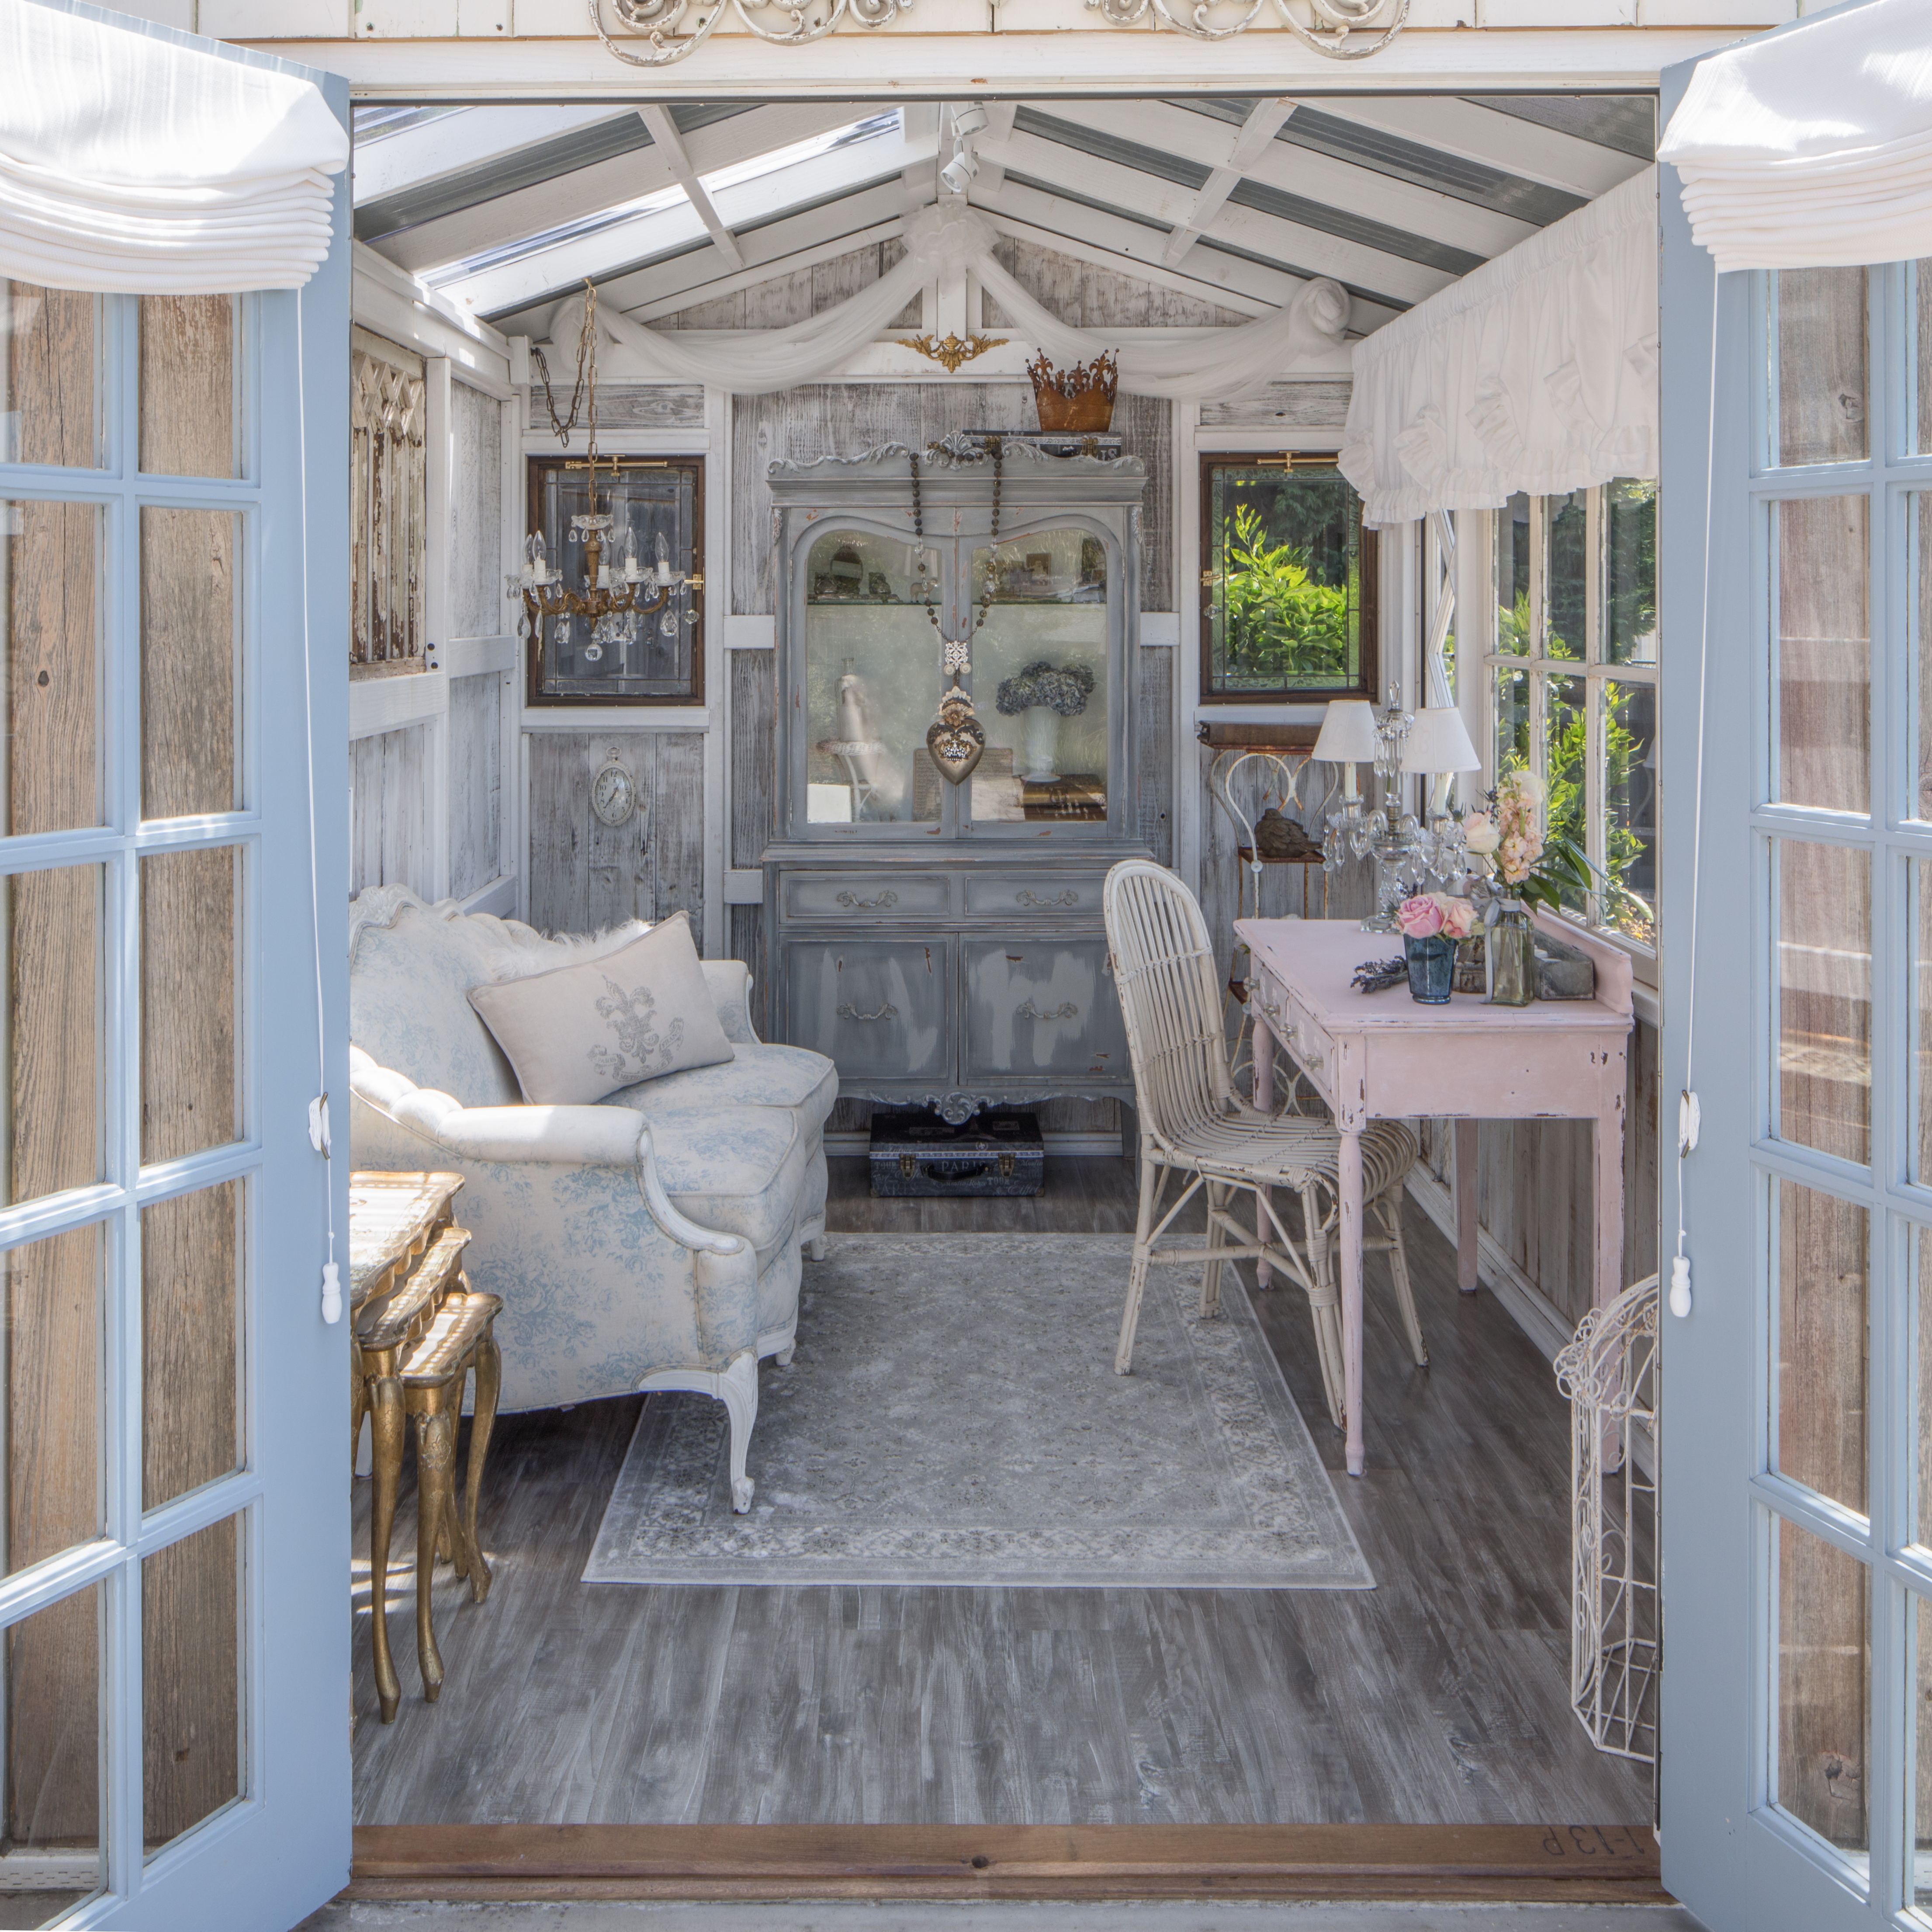 Stylish She Sheds Offer Multi Tasking Women An Escape From Domestic Chaos Quartz